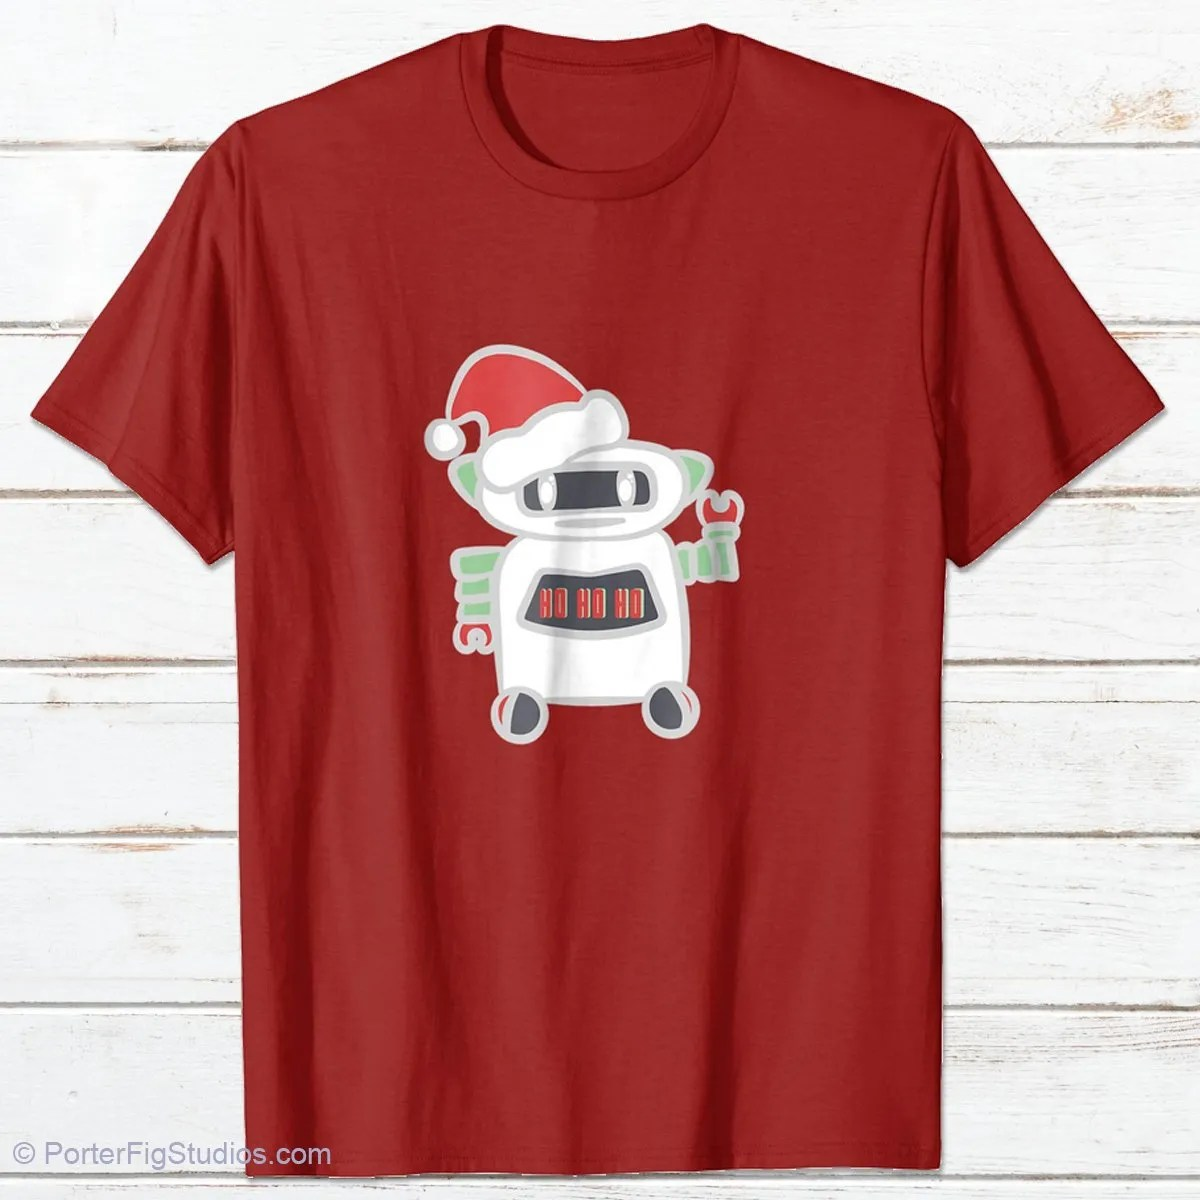 robot santa graphic t-shirt by porter fig studios